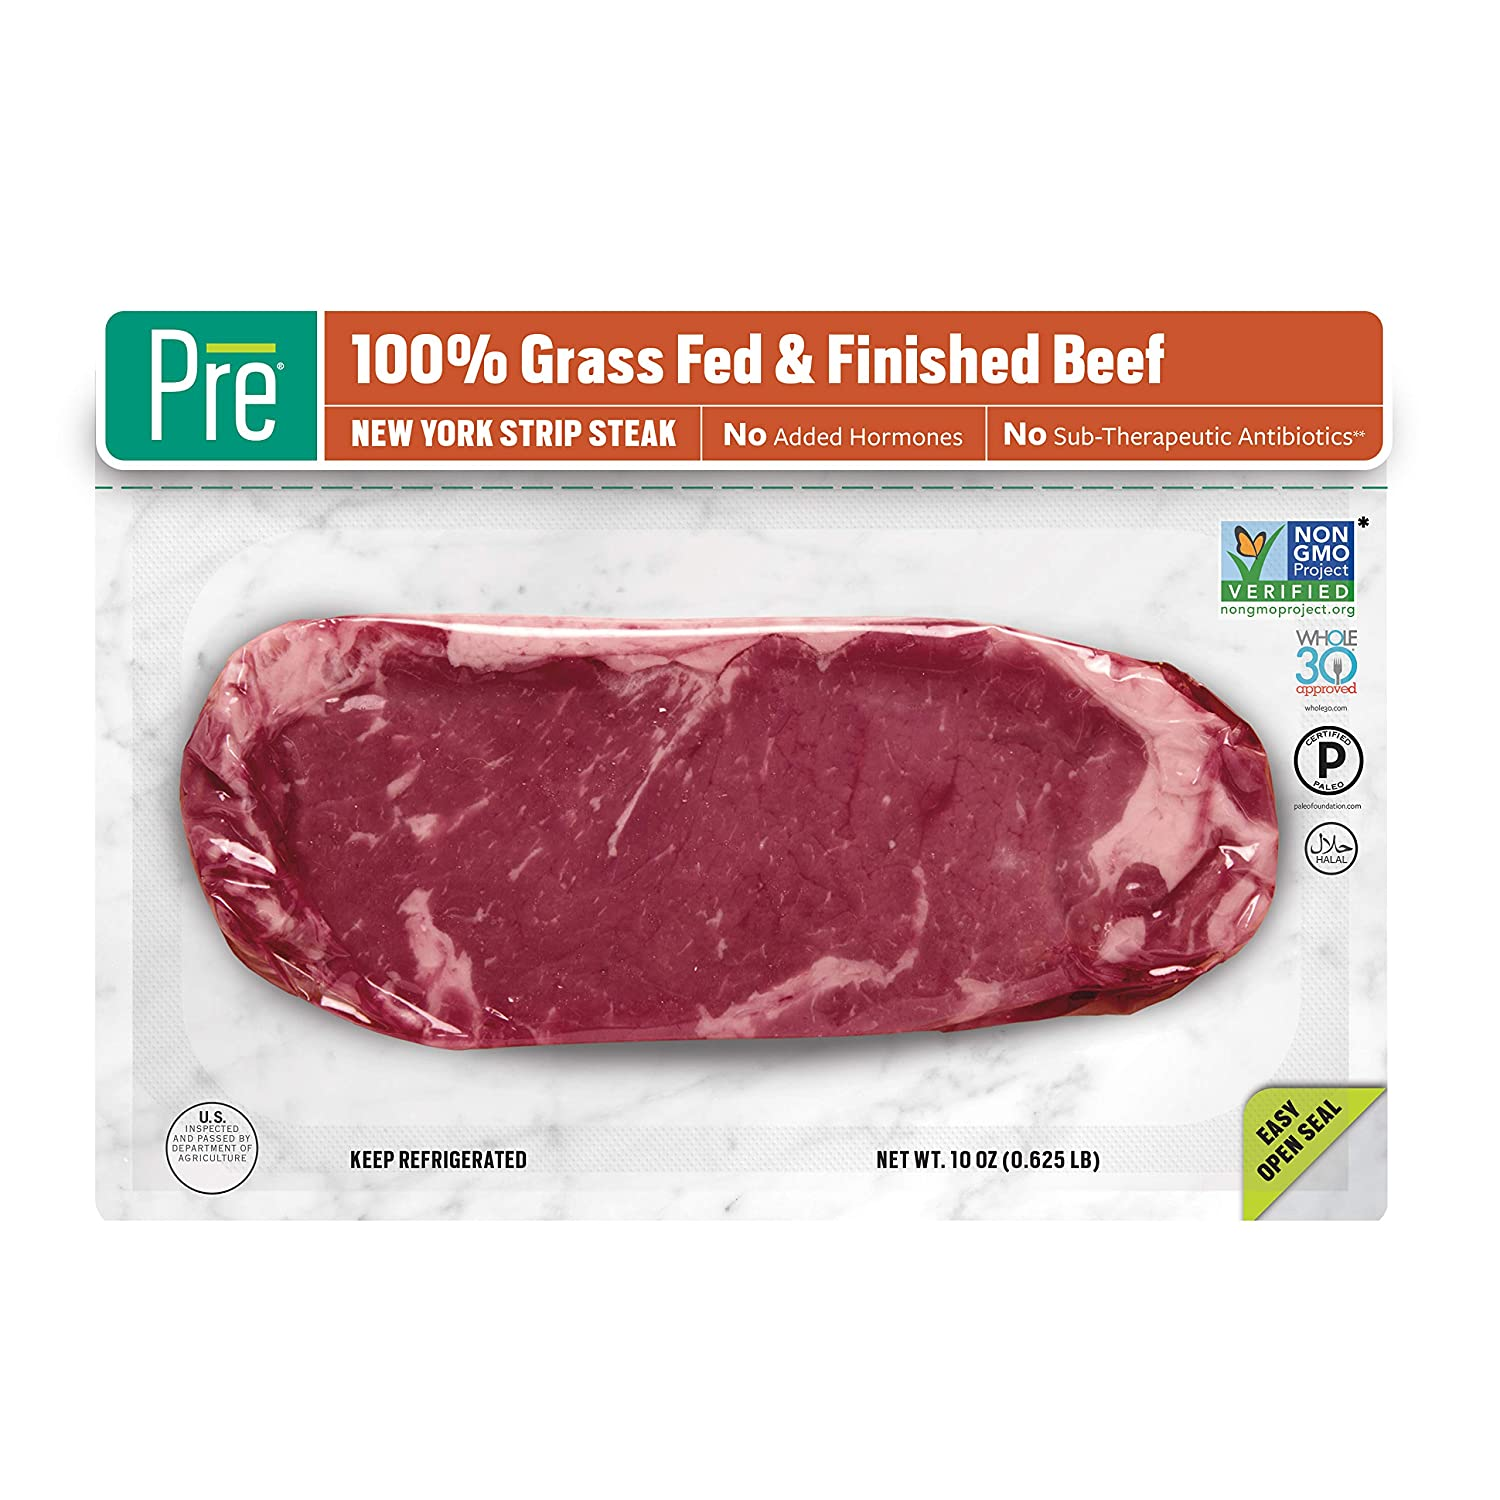 Pre, New York Strip Steak – 100% Grass-Fed, Grass-Finished, and Pasture-Raised Beef – 10oz.